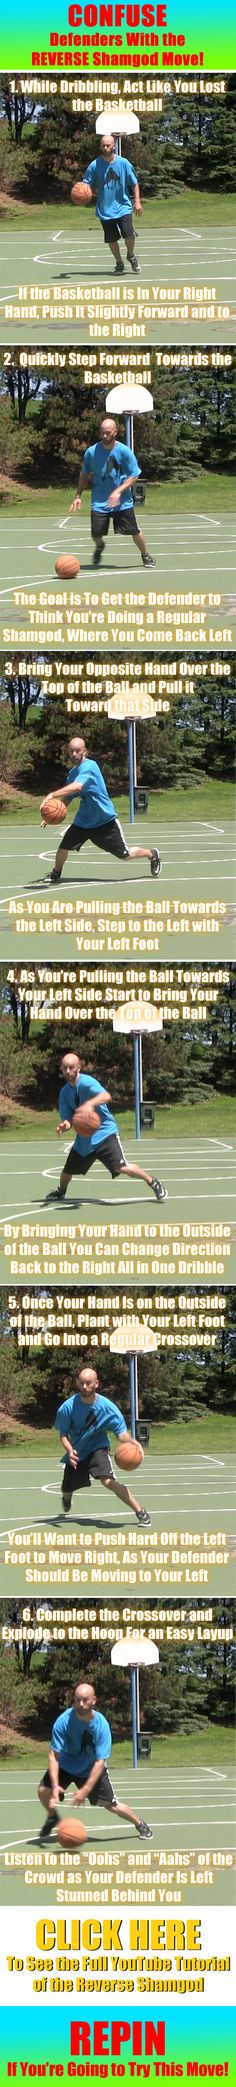 Sick basketball move to totally confuse defenders! #basketball #basketballmoves